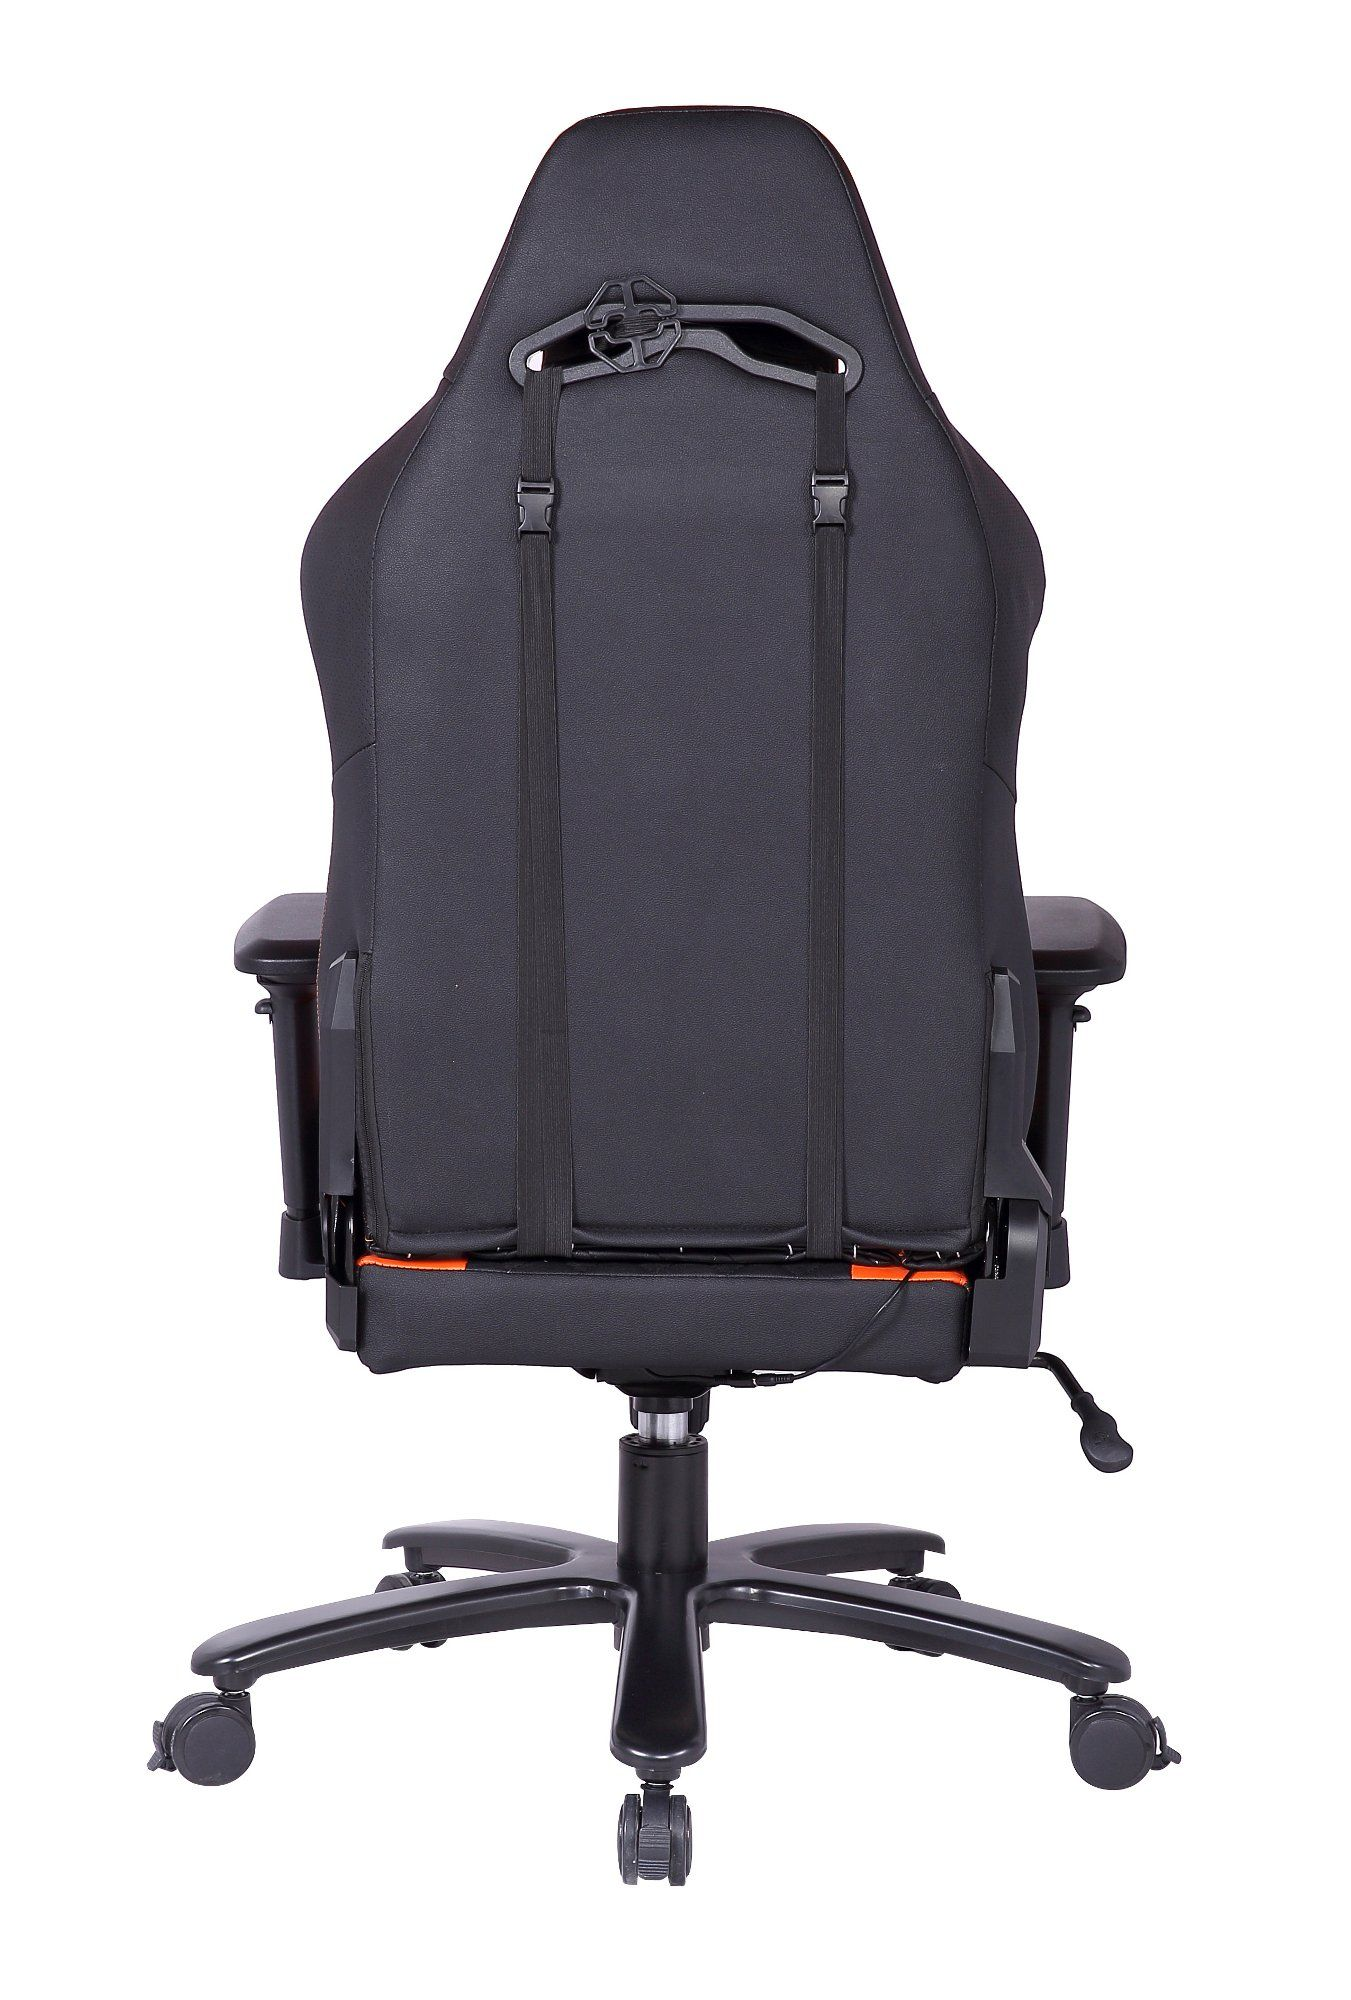 X Rocker Adrenaline Gaming Chair In 2020 Gaming Chair Office